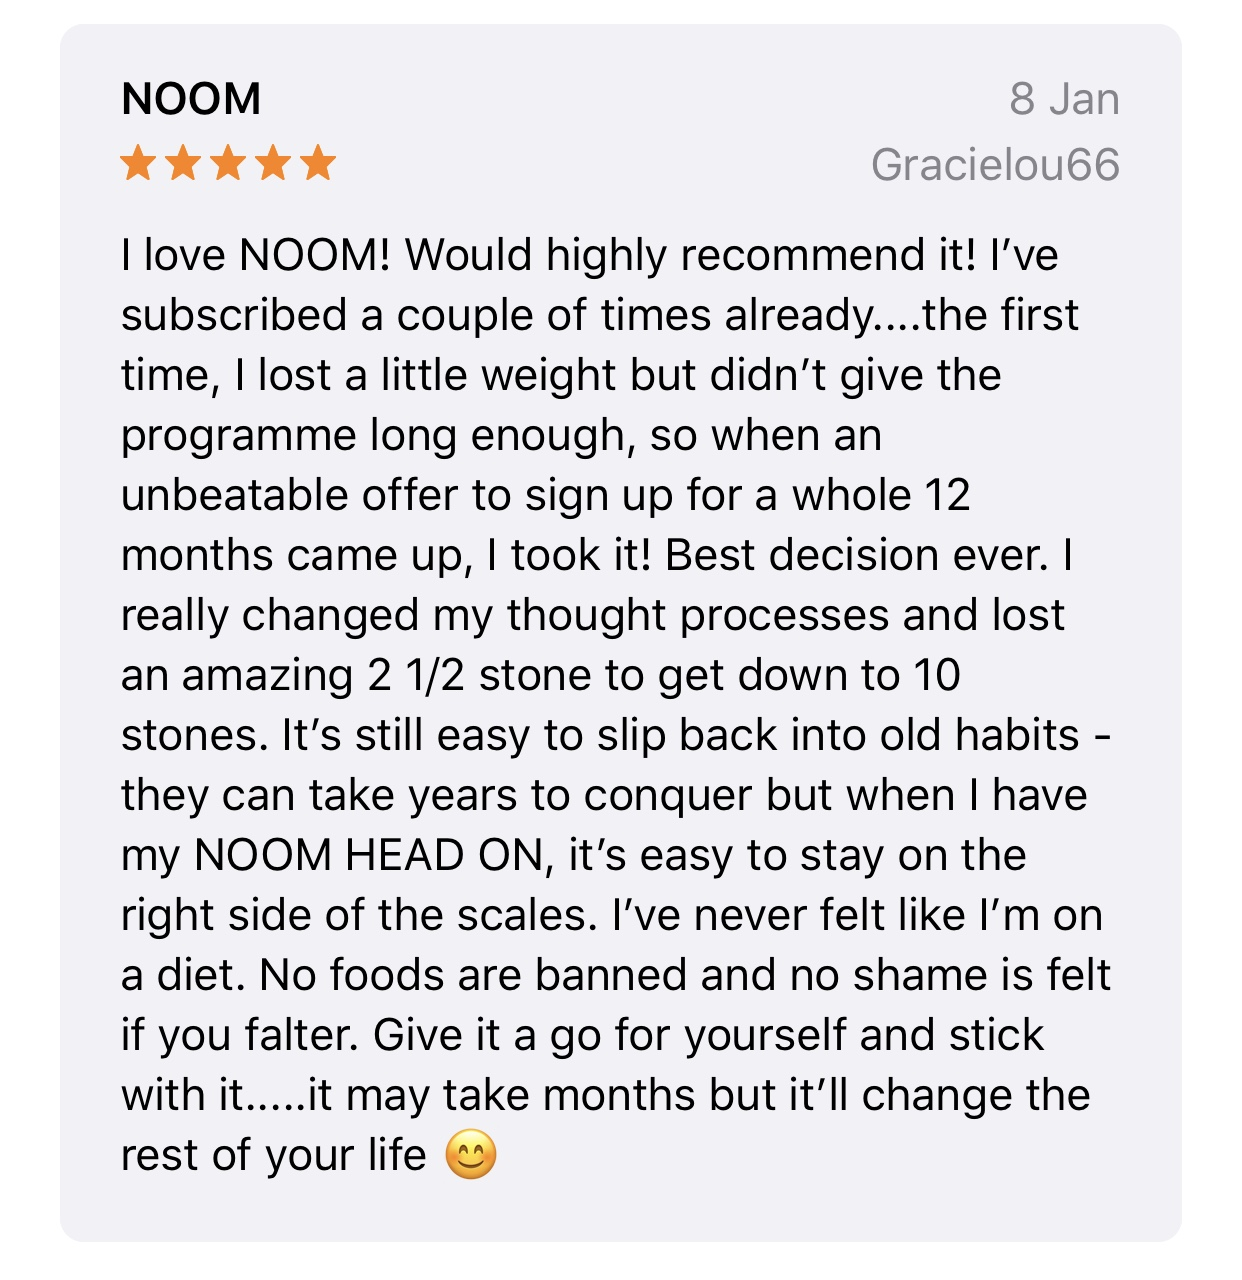 Noom user review